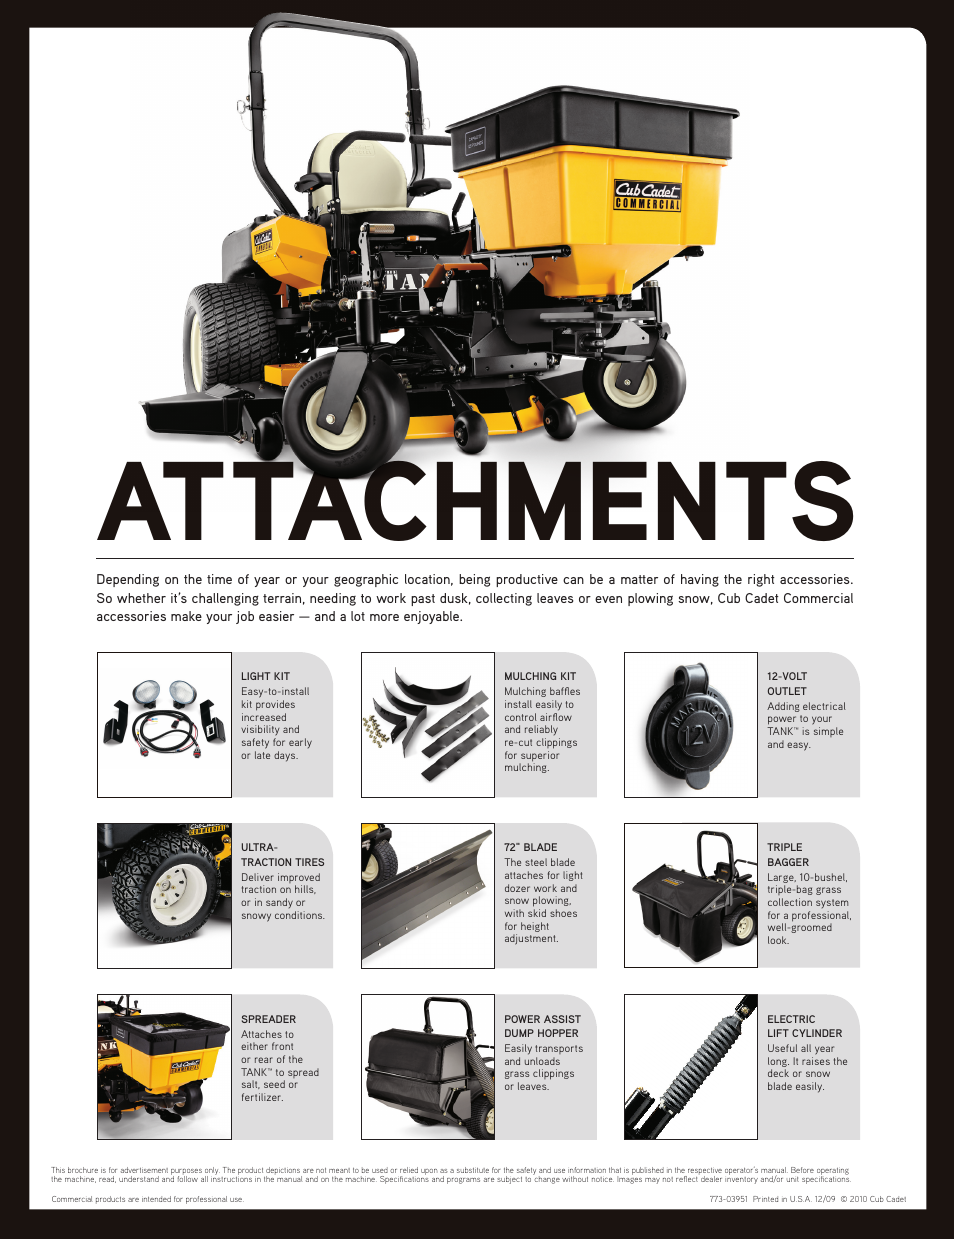 Attachments | Cub Cadet TANK 48 User Manual | Page 4 / 4